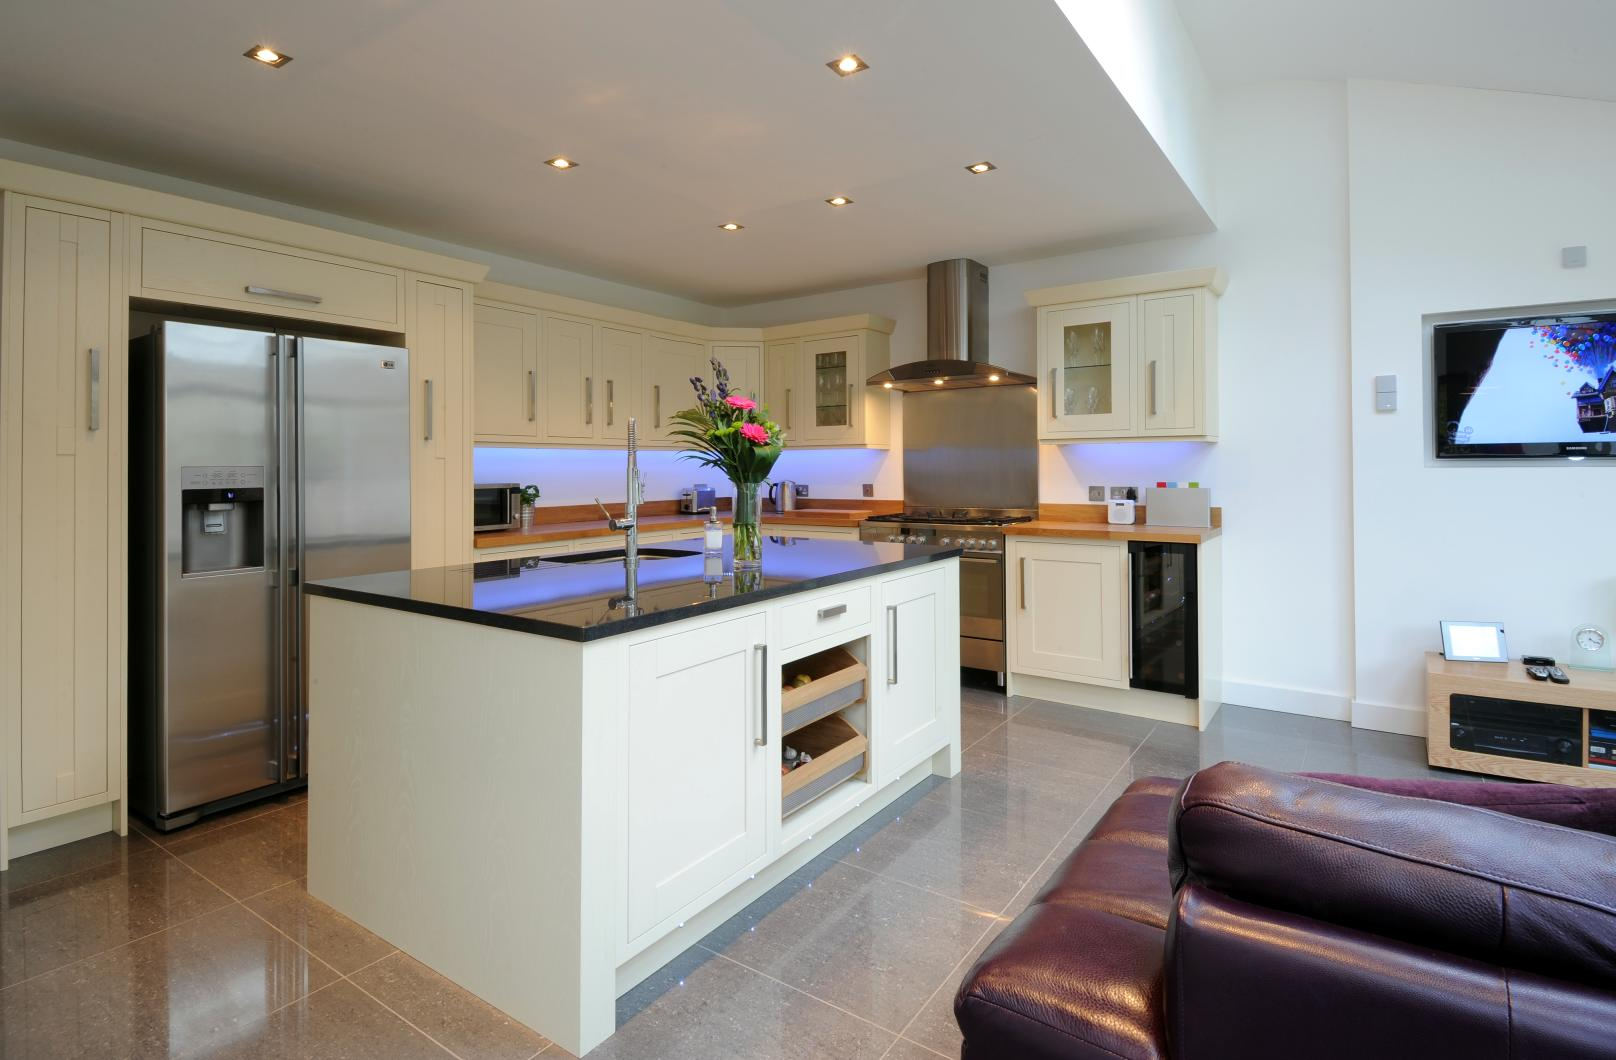 Hannah barnes interior designs kitchen design for Kitchen ideas uk 2015